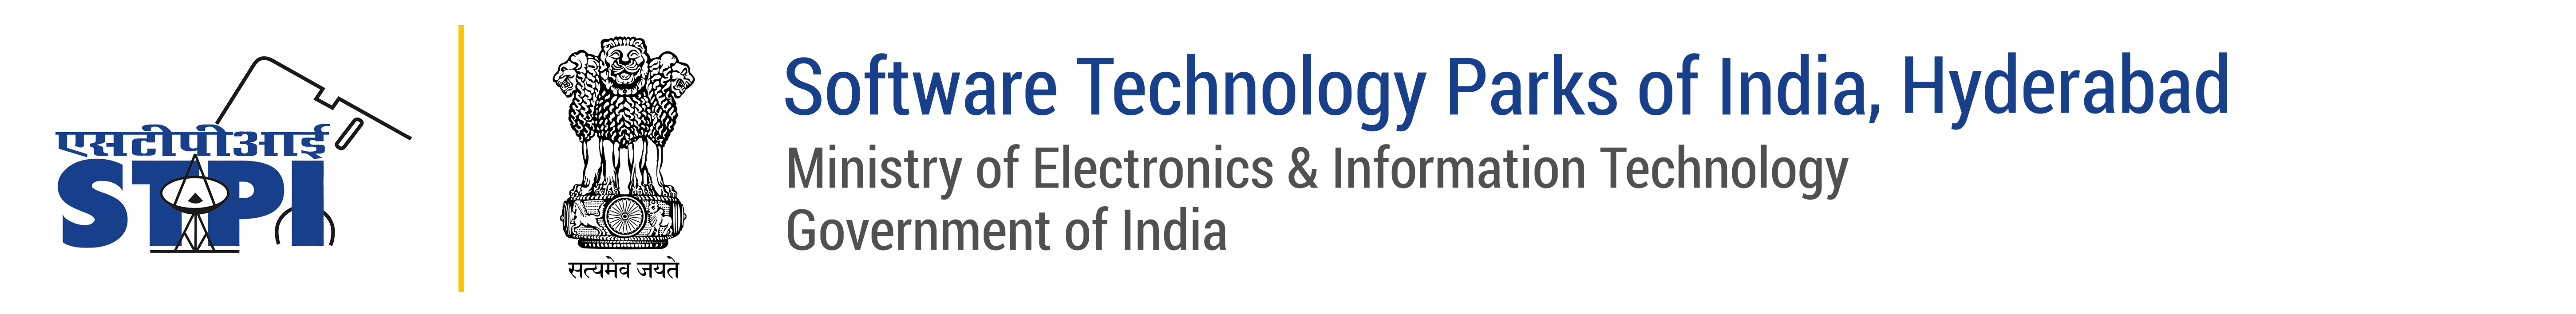 Software Technology Park of India - Ministry of Electronics & Information Technology, Government of India